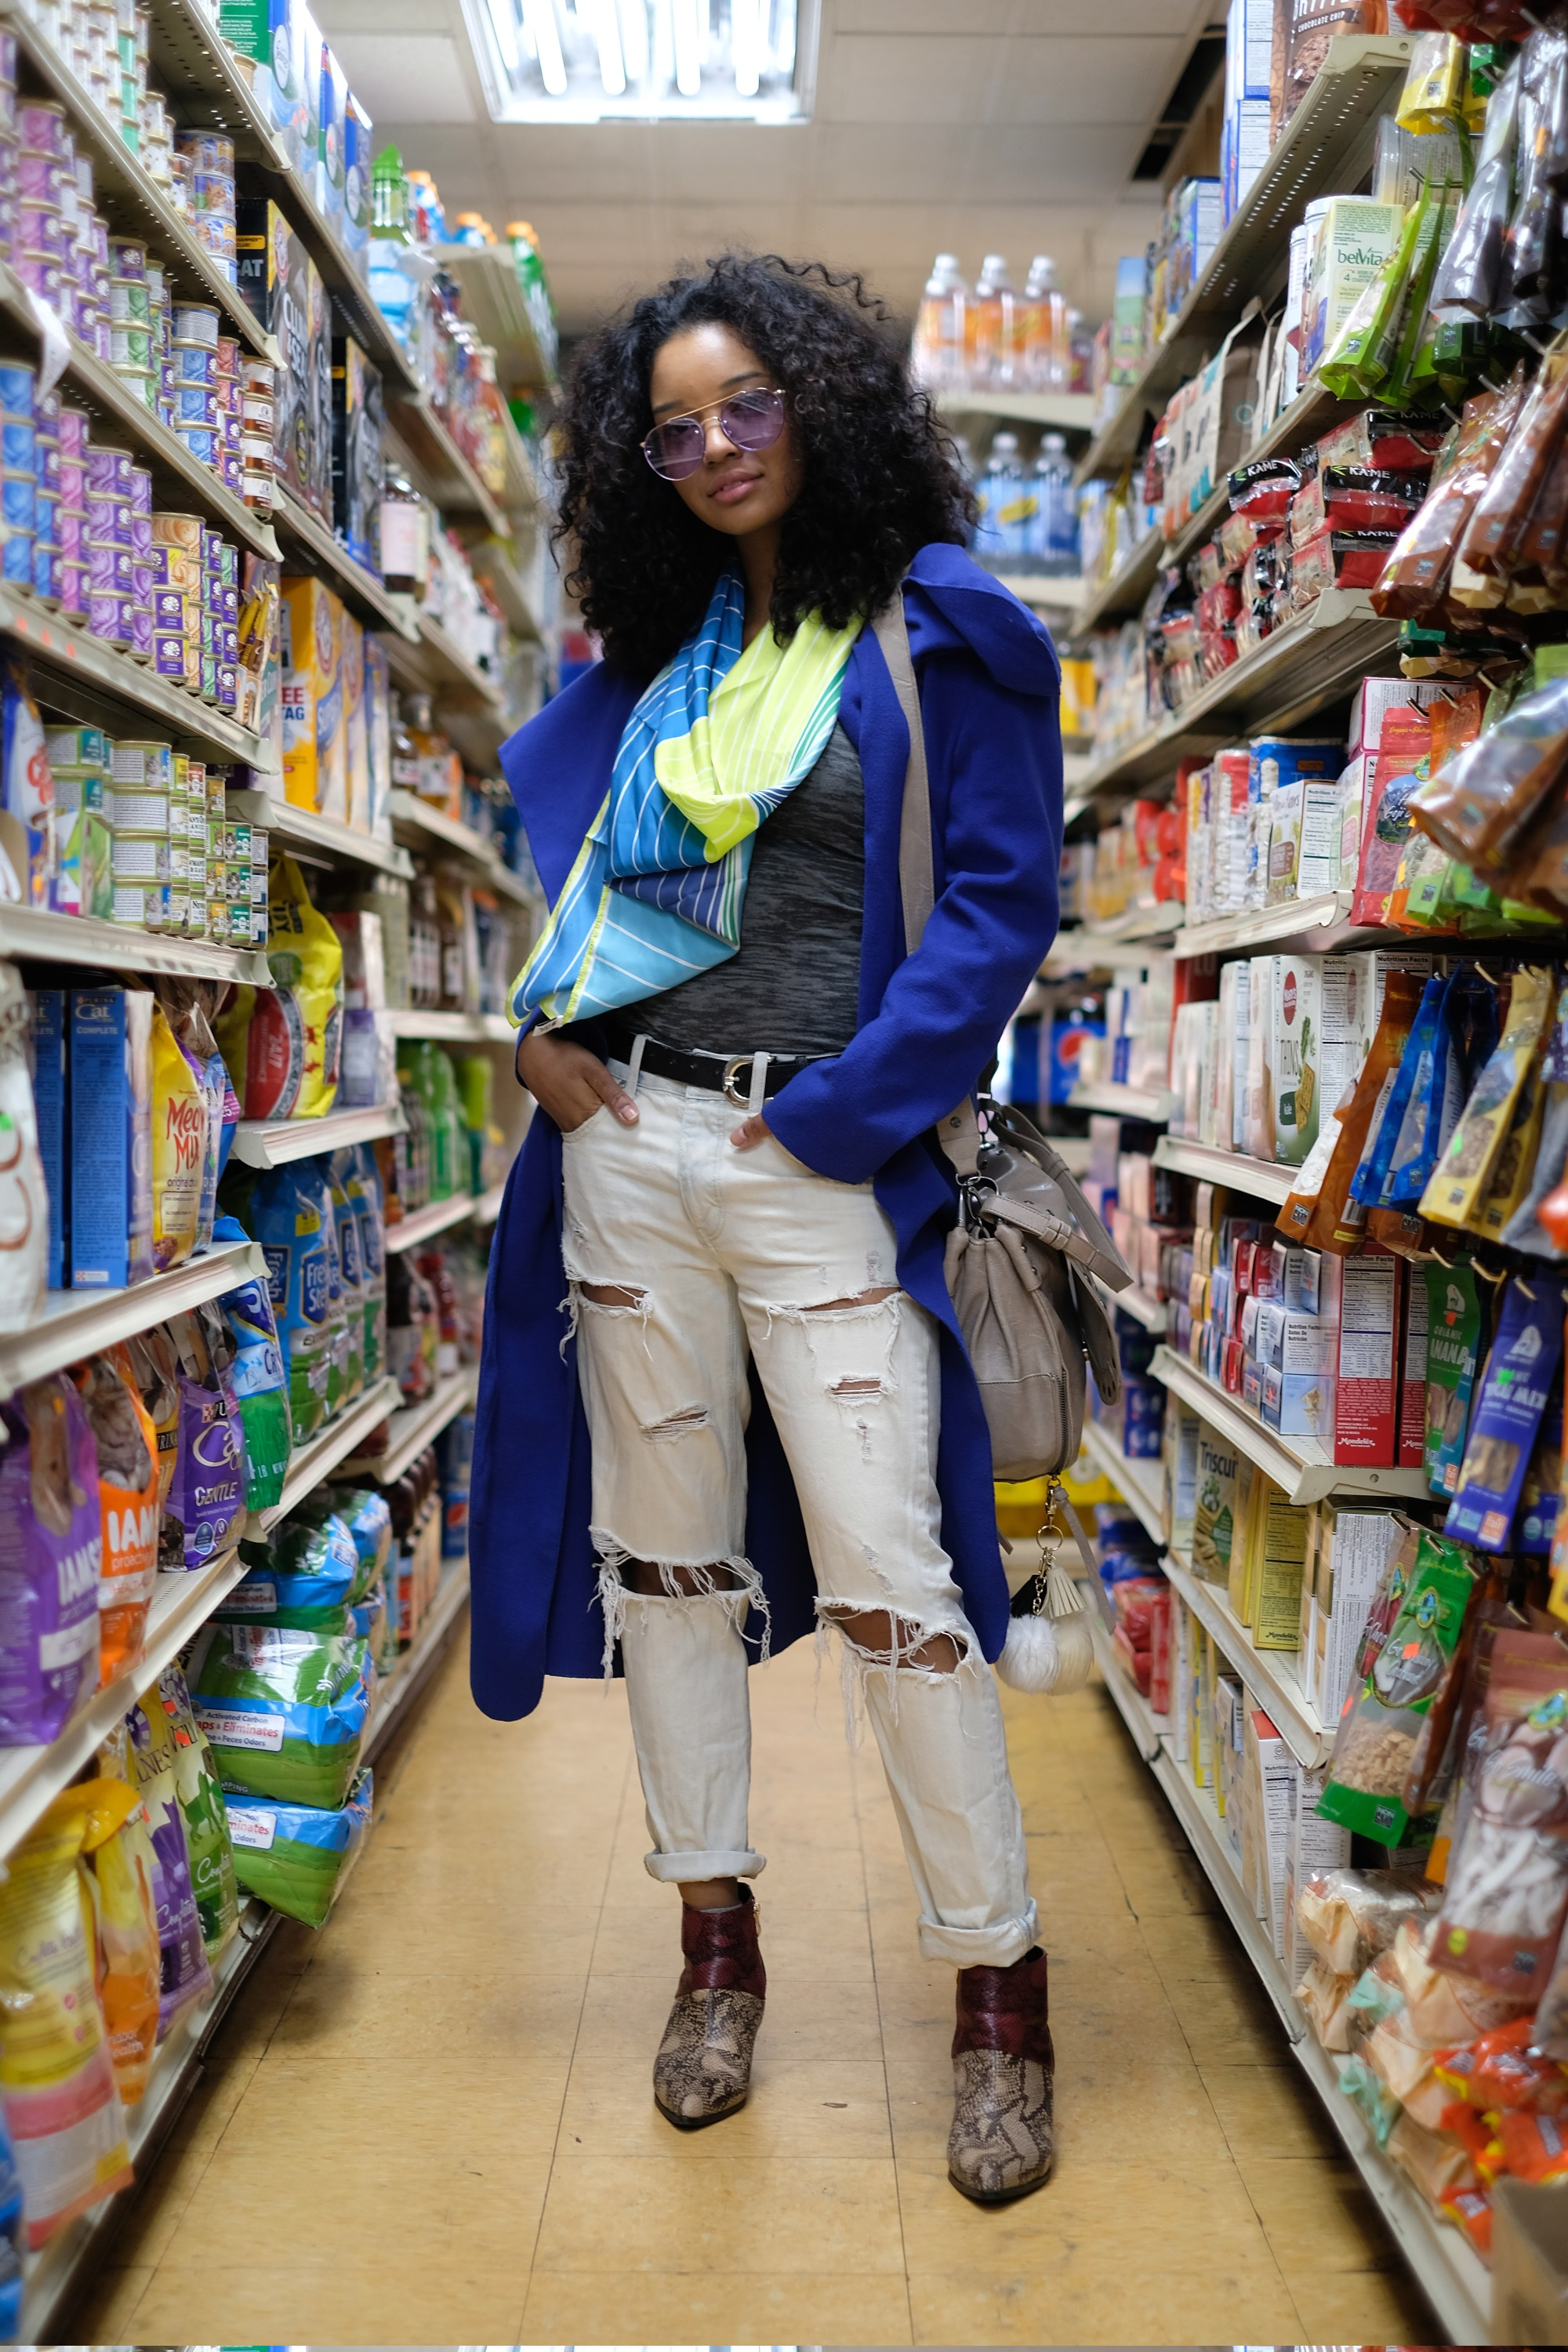 girl in blue coat in store aisle